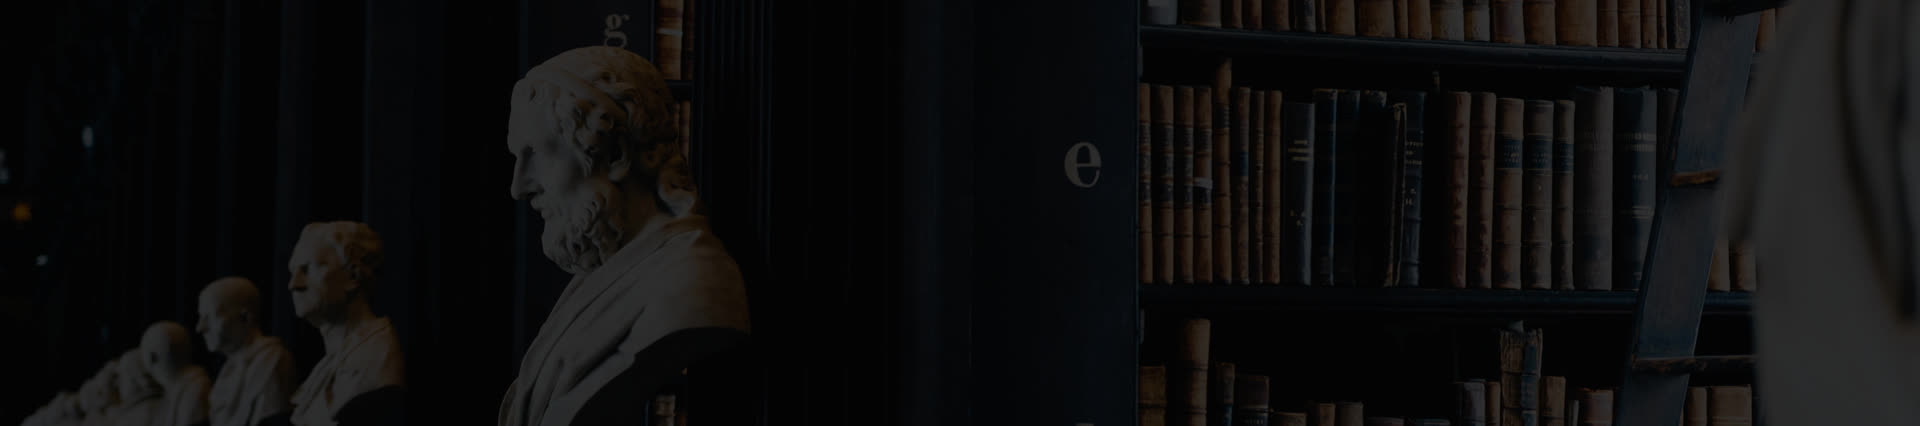 Law Library| White Statue| Practice Area| Experienced Attorneys| Intellectual Property Litigation Lawyers| Dani & Dani